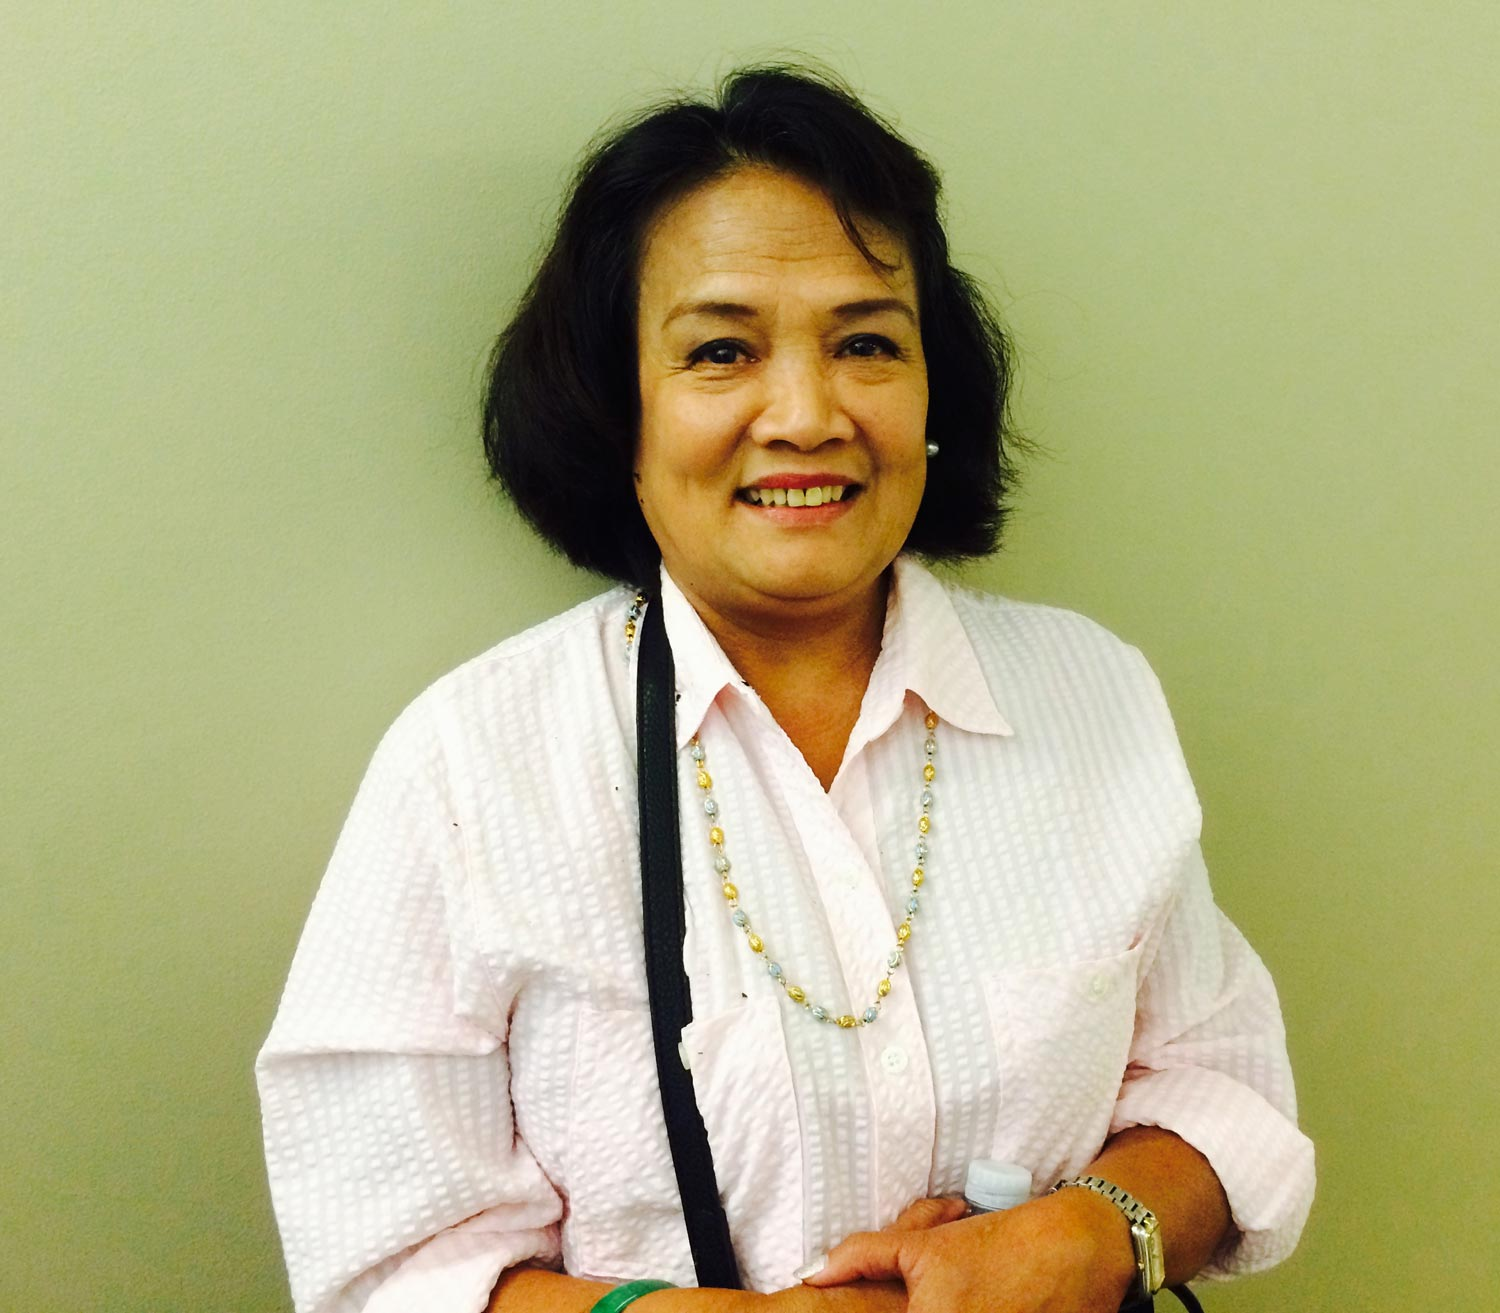 Leah Tejada, 63, is a caregiver based in Los Angeles. Her family's home has been destroyed multiple times on the north coast of Leyte from typhoons, but she still plans to return after retirement and help her family withstand climate change's affects in the coming years.